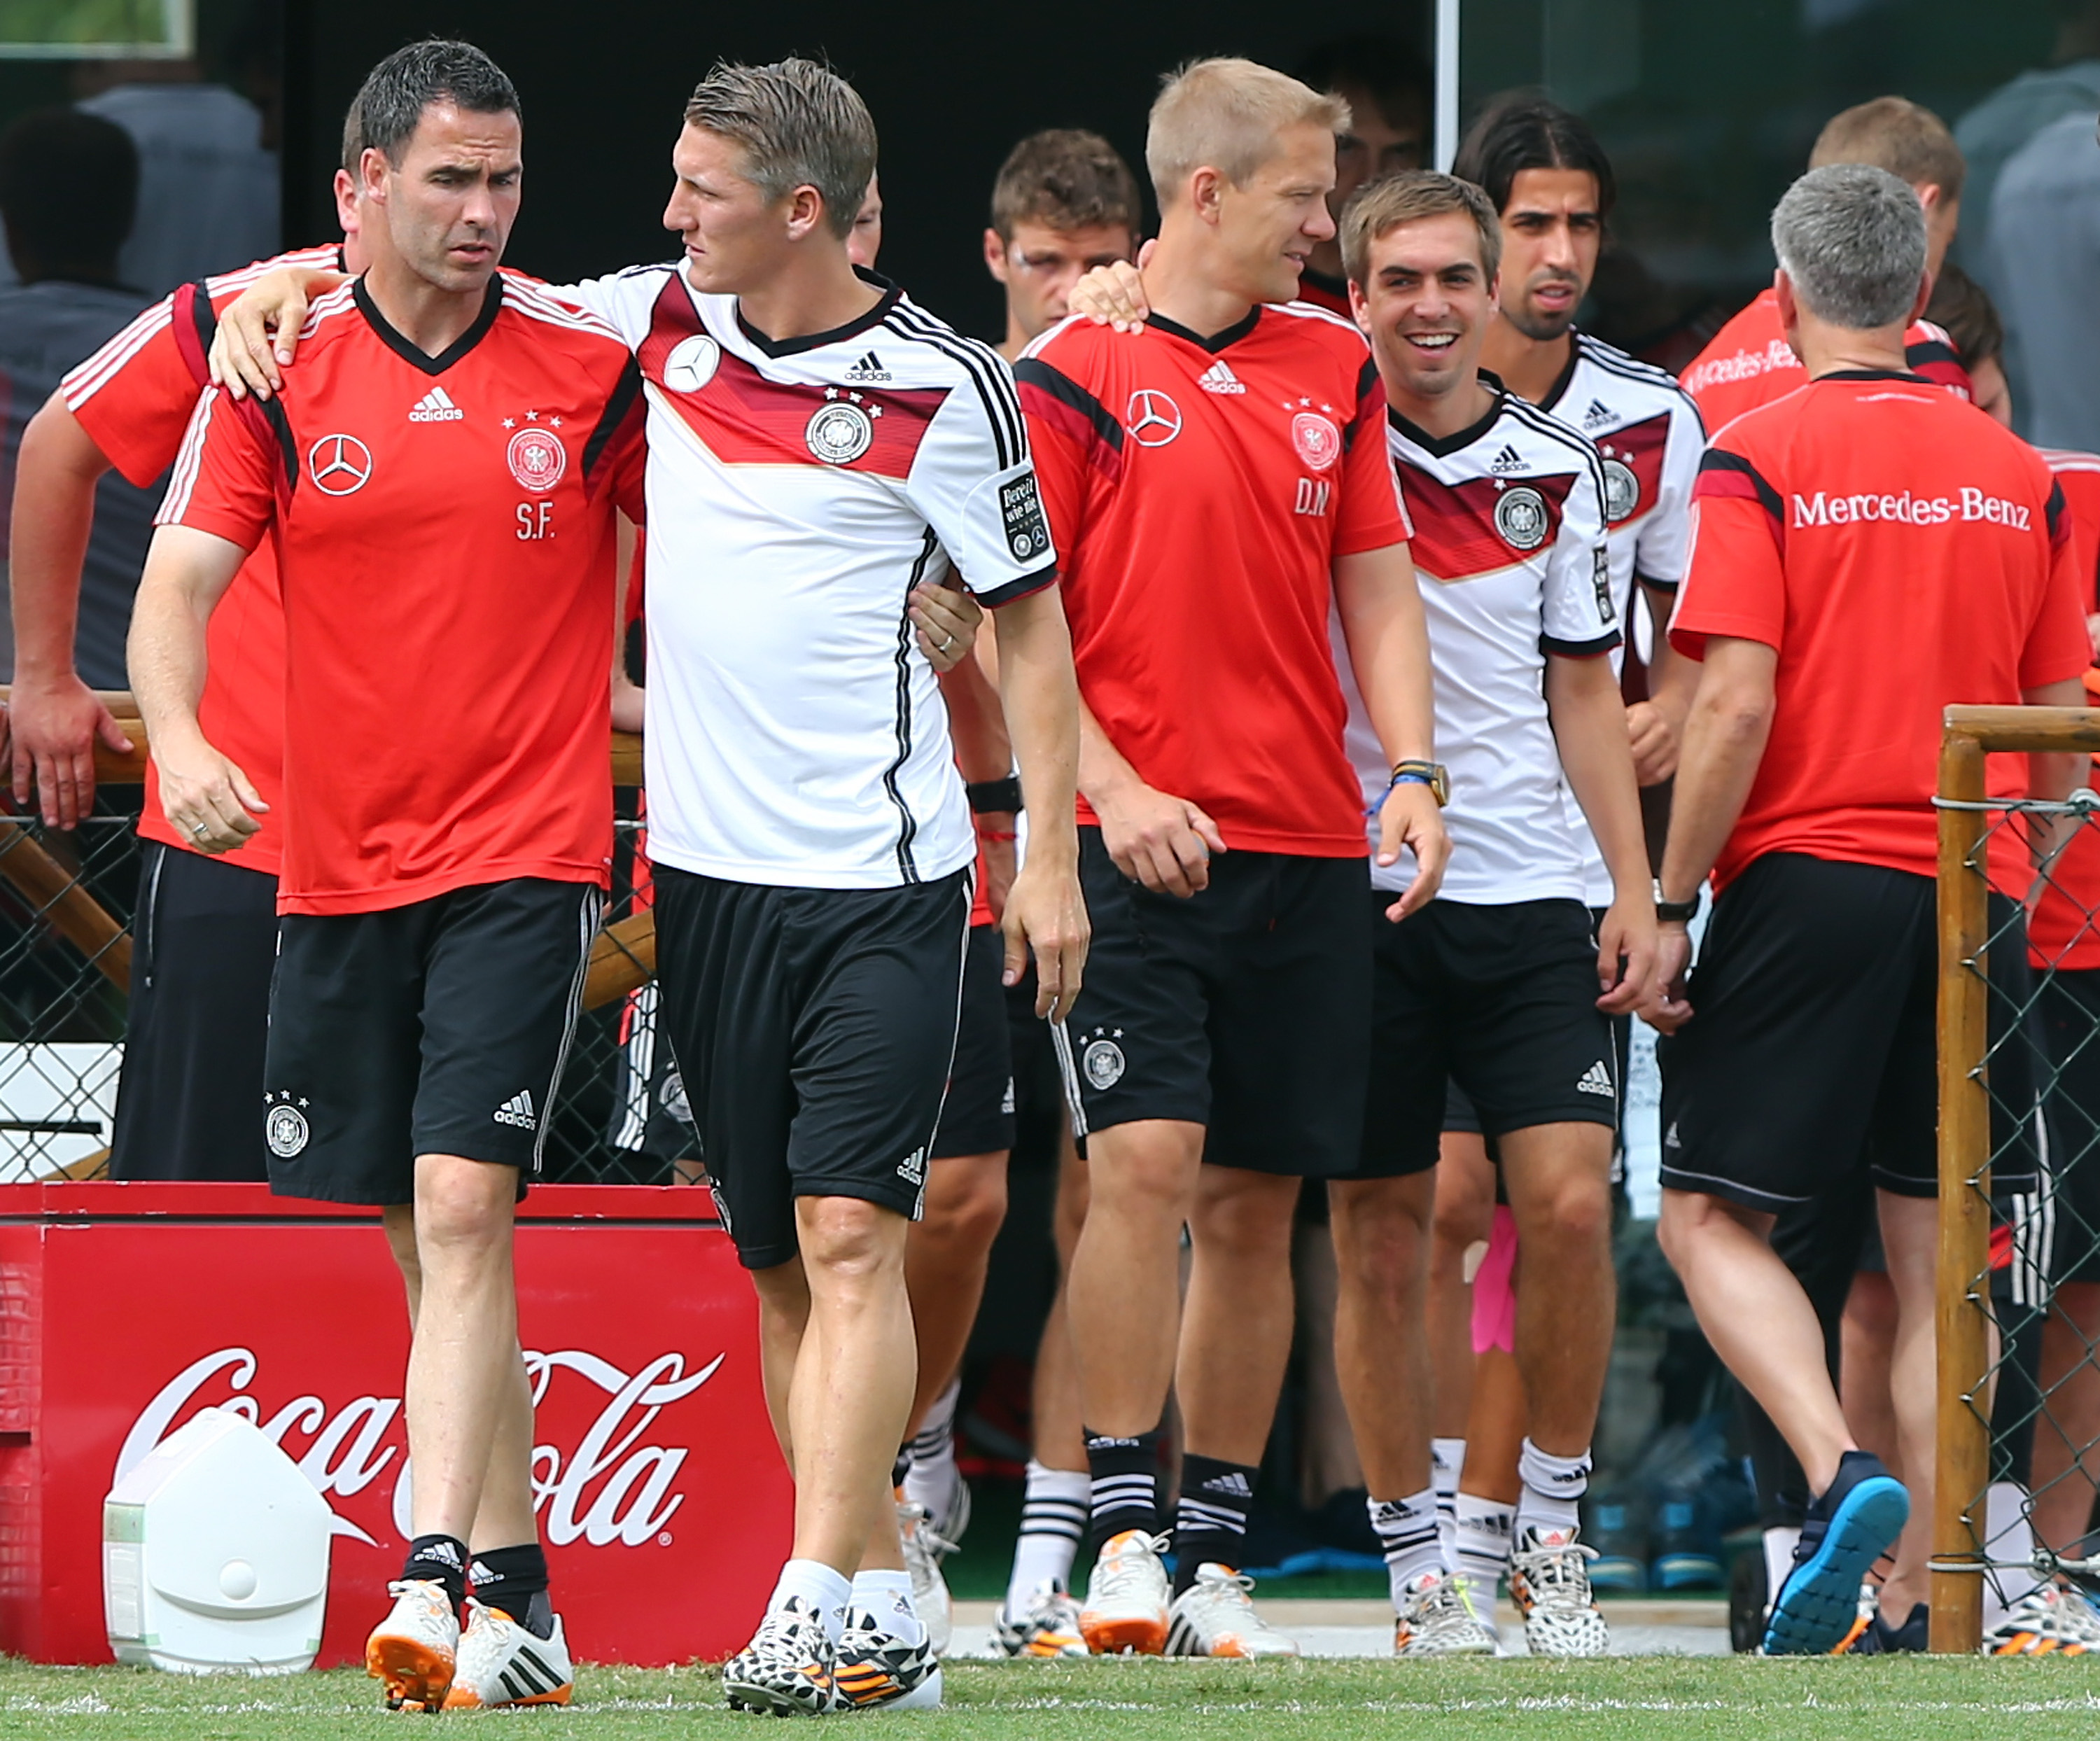 Shad Forsythe (left), assistant coach of Germany, talks to Bastian Schweinsteiger during the German national team training on June 23, 2014 in Santo Andre, Brazil.